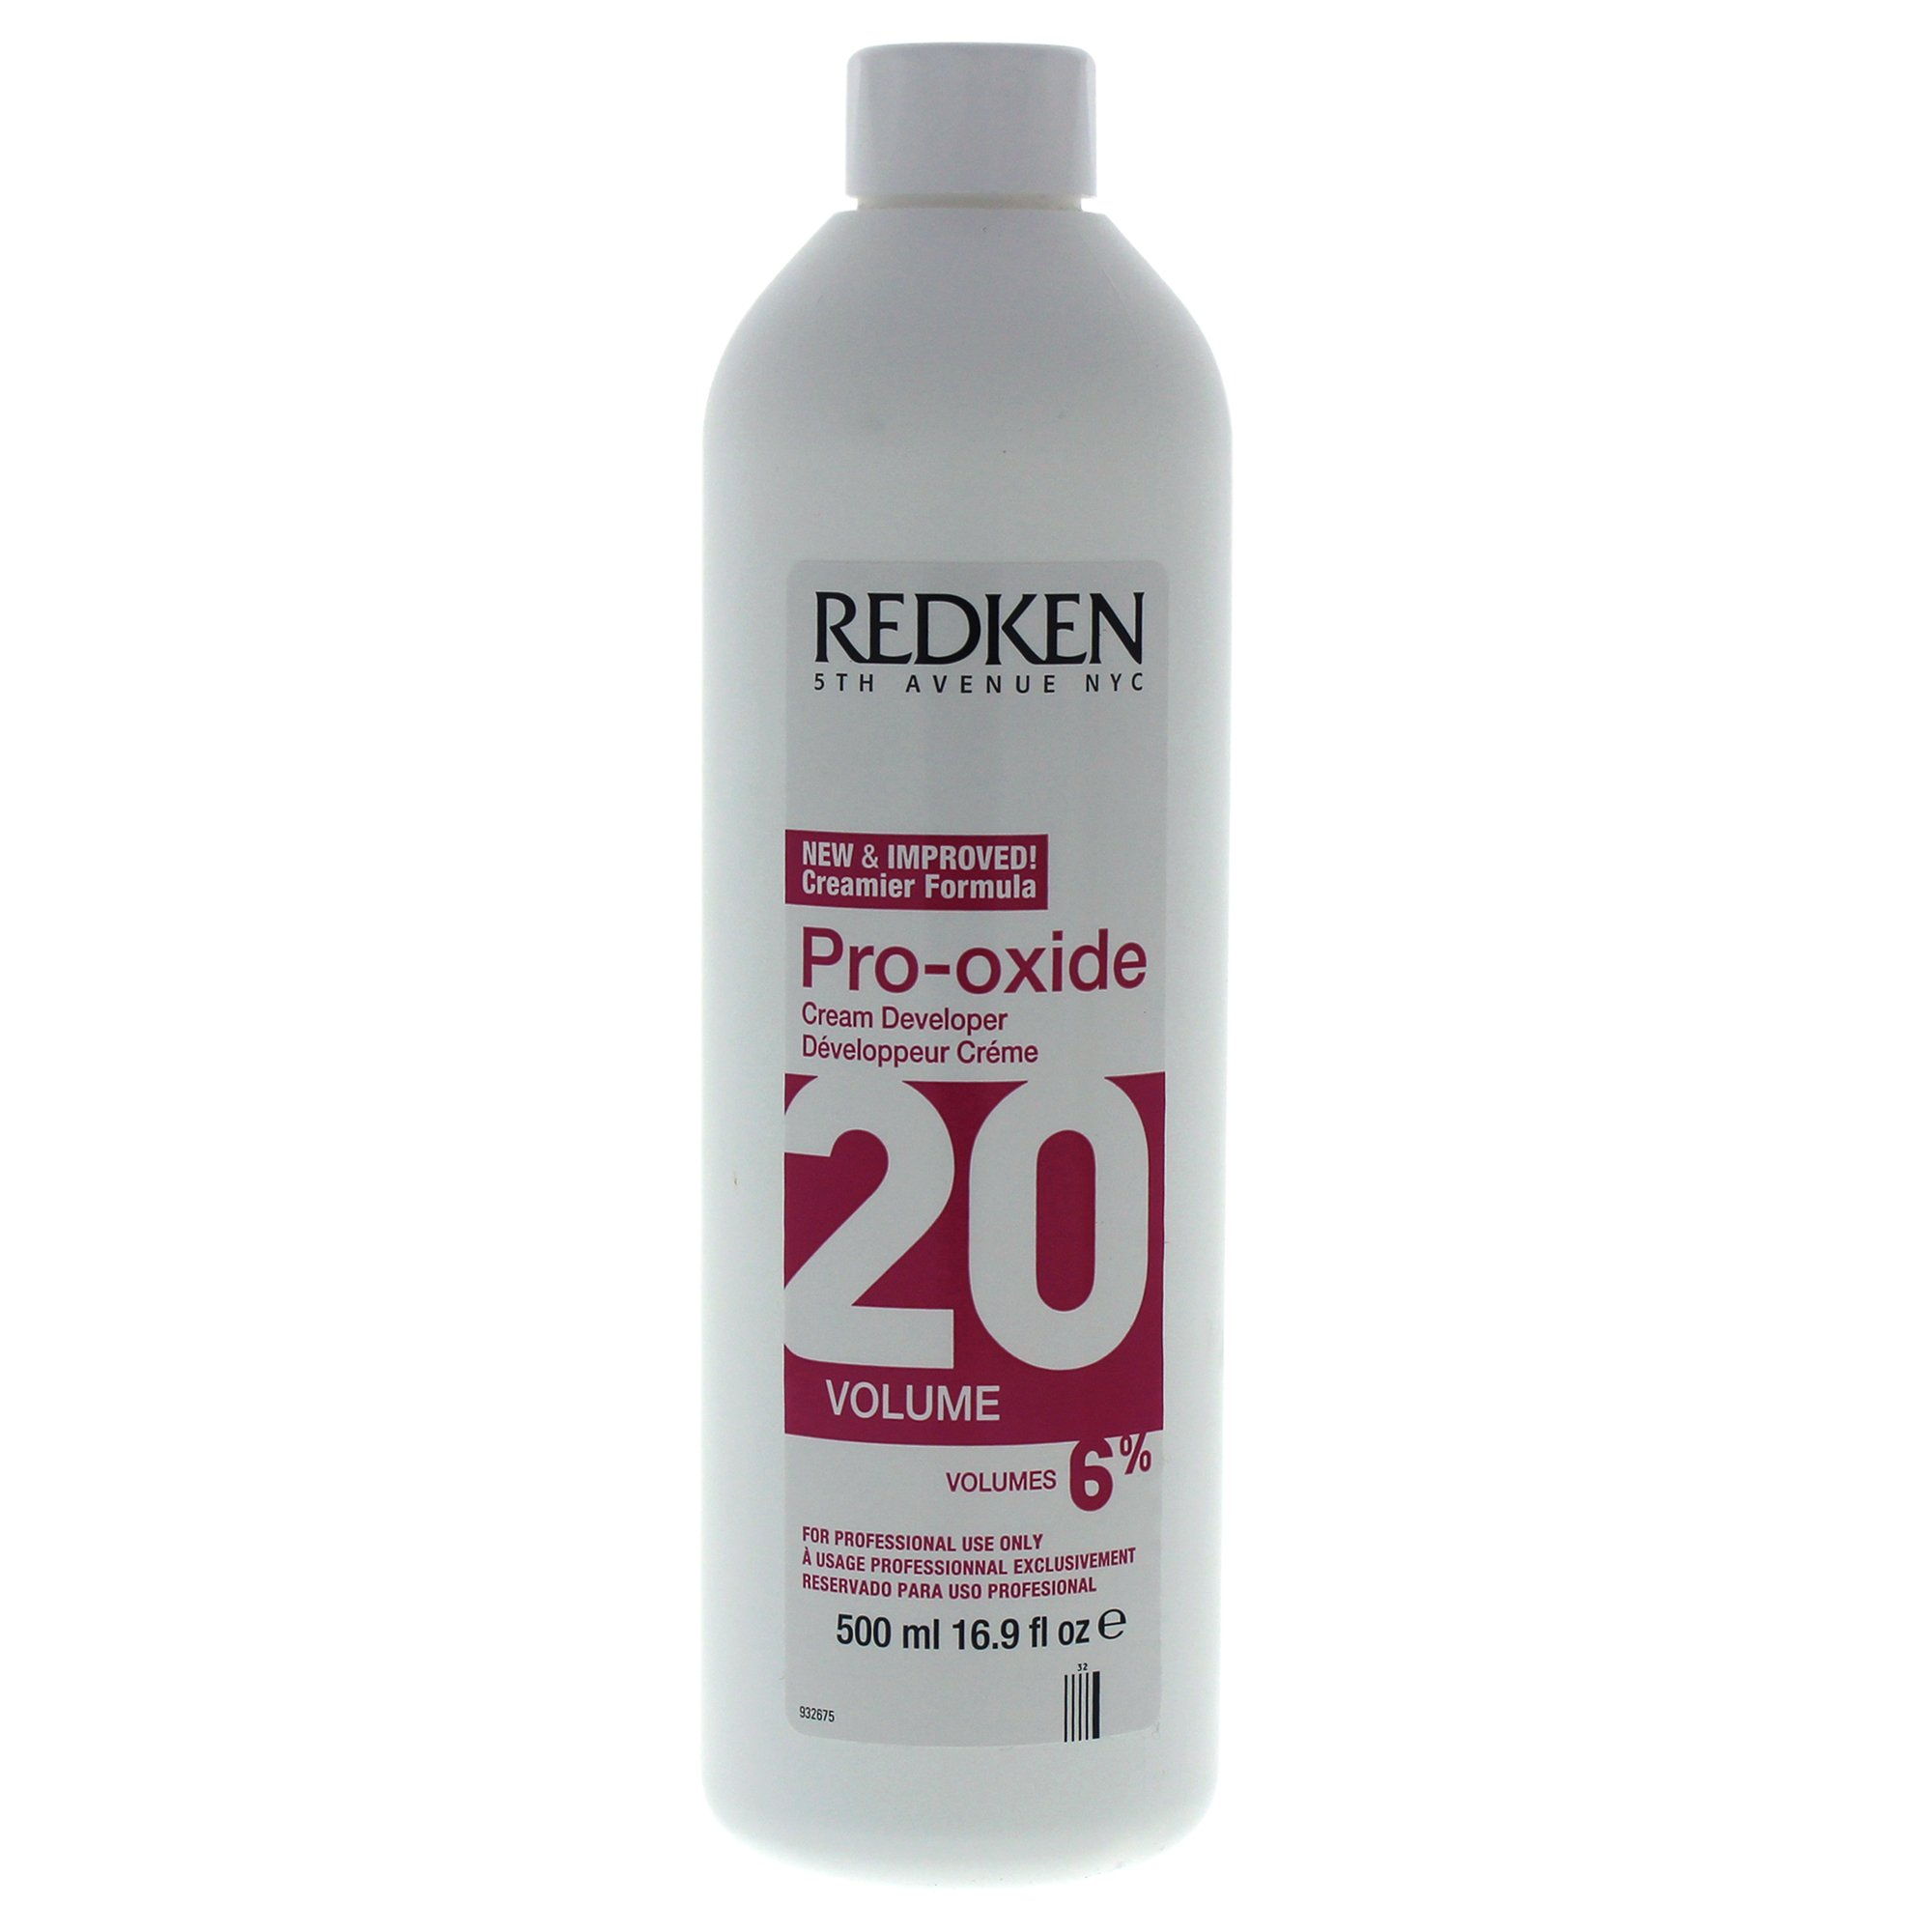 Redken Pro-Oxide Cream Developer 20 Volume Treatment for Unisex, 16.9 Ounce